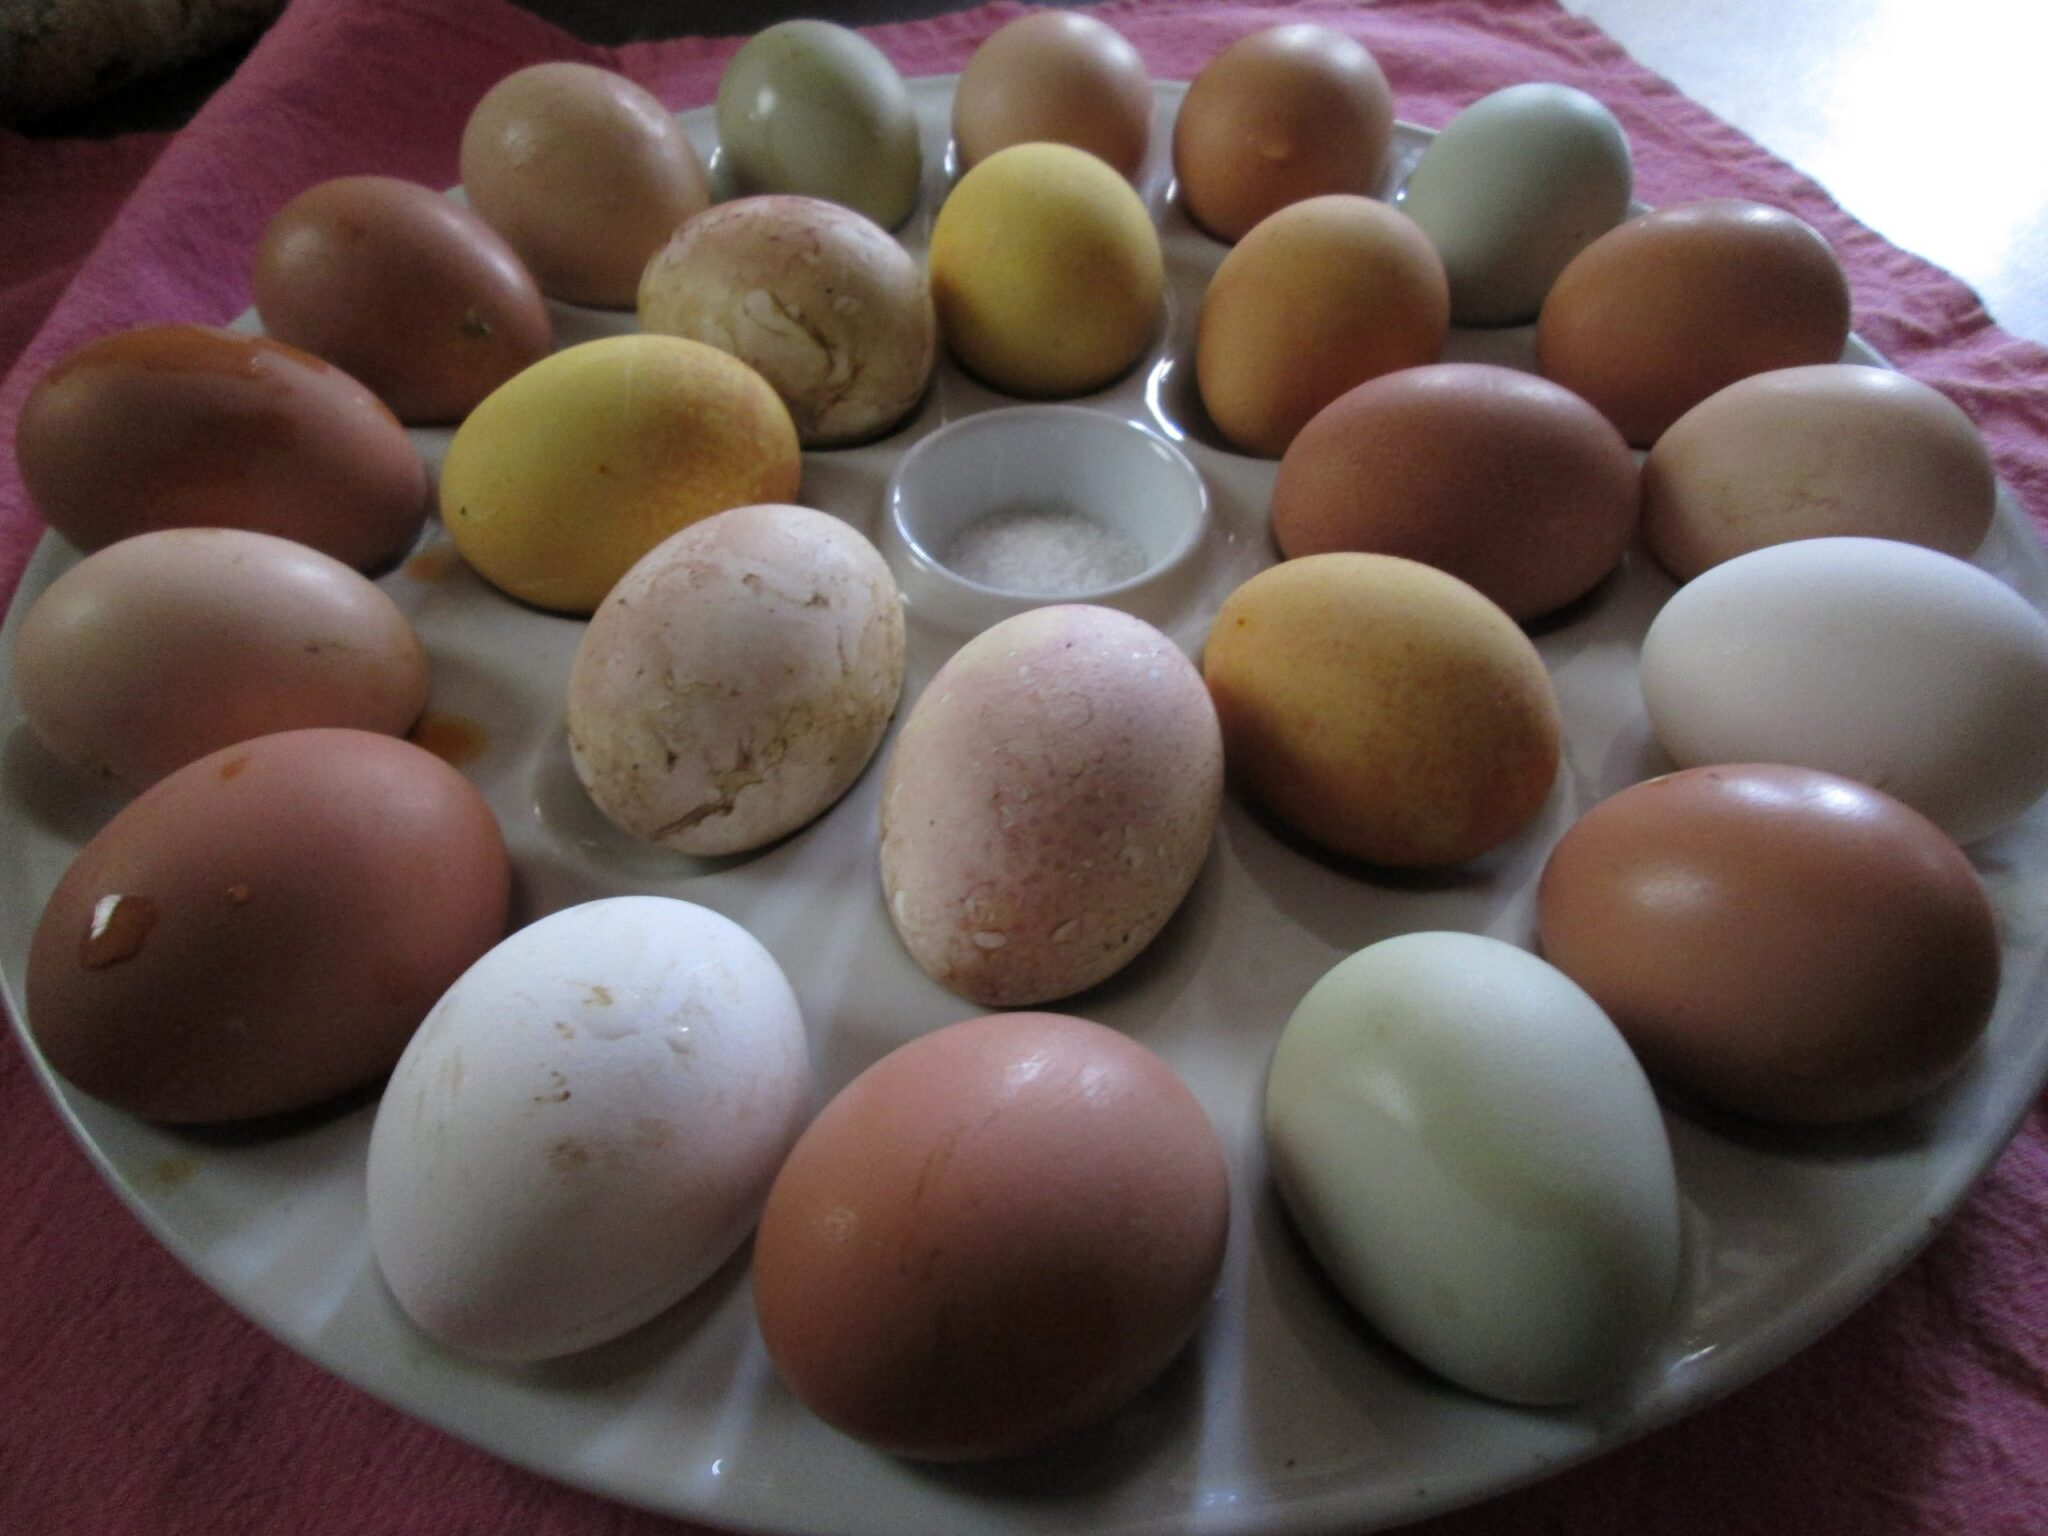 Here are those Eostre eggs, naturally hued and naturally dyed- beets and turmeric are almost as pretty as easter-egger green and the various browns and tans